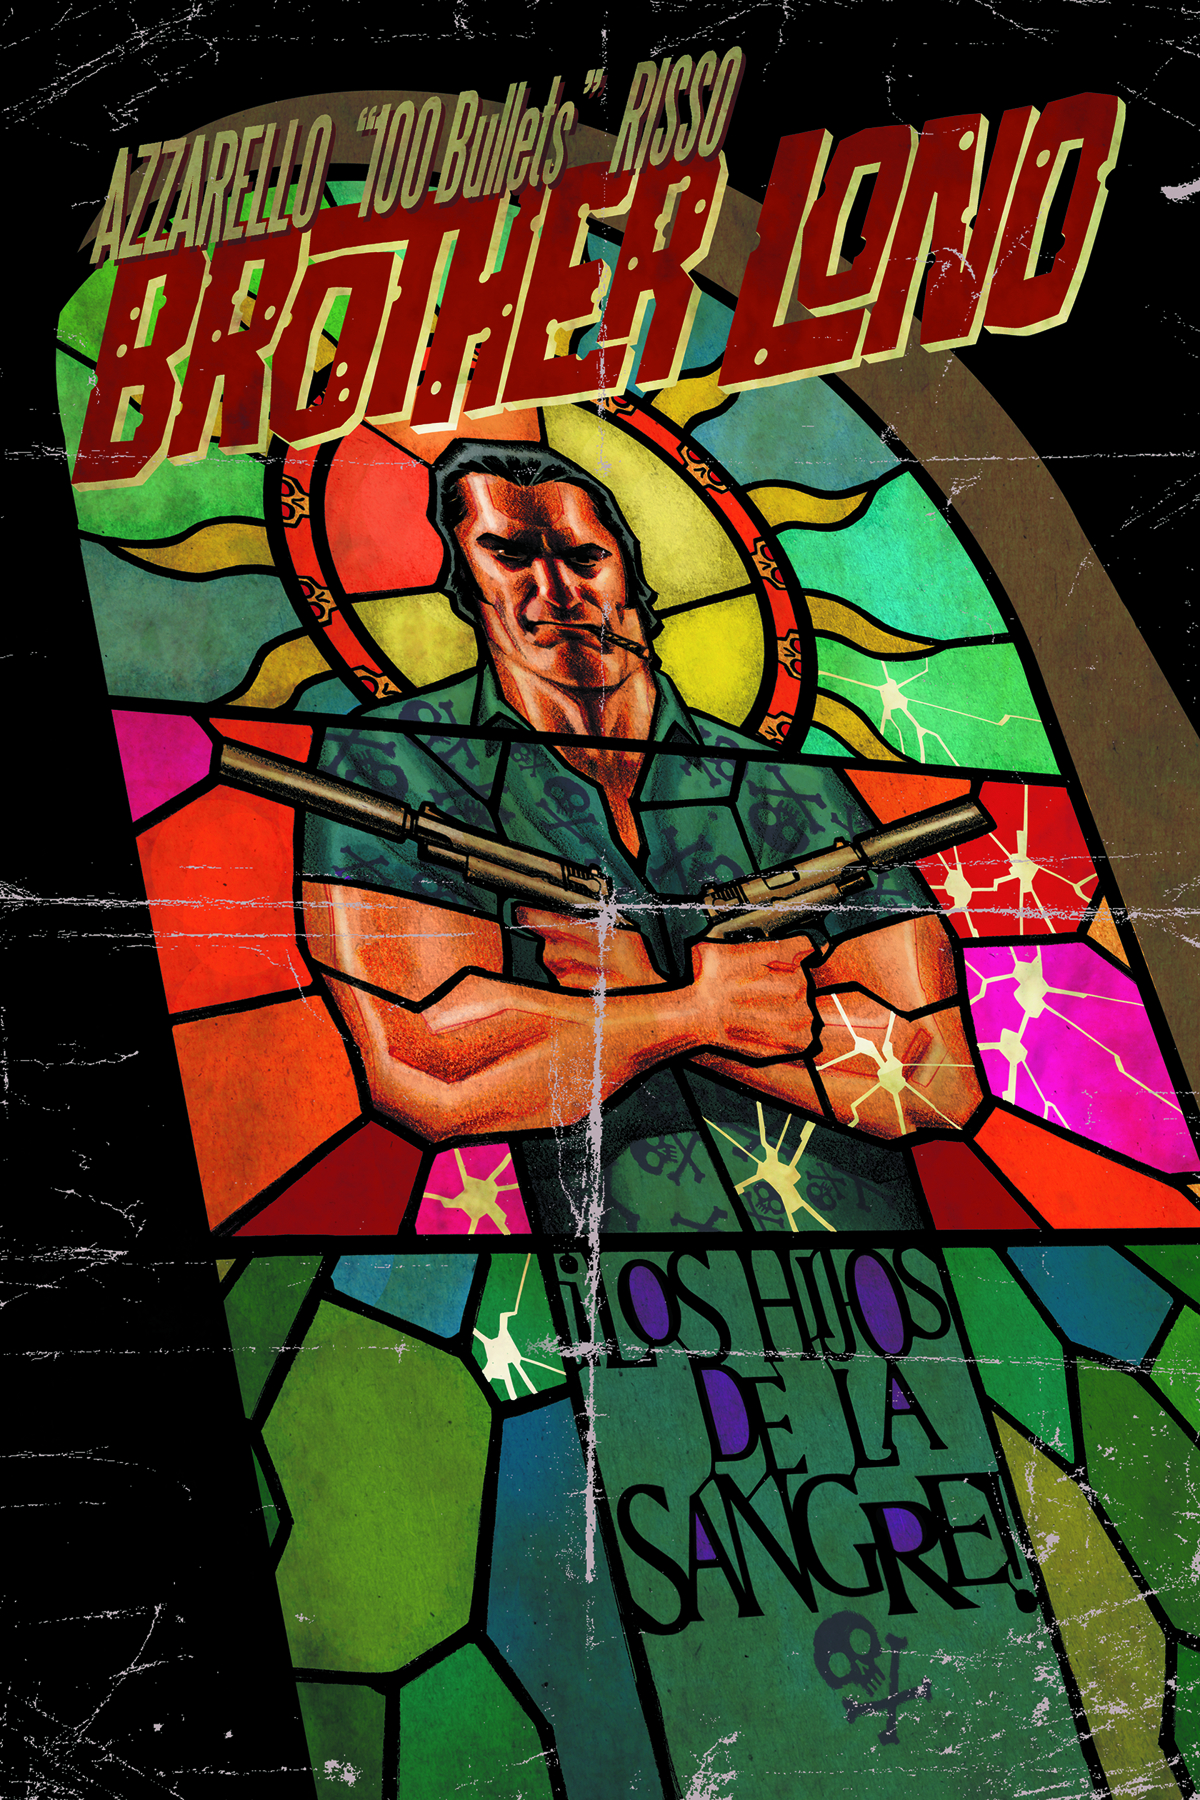 100 BULLETS BROTHER LONO #5 (OF 8)